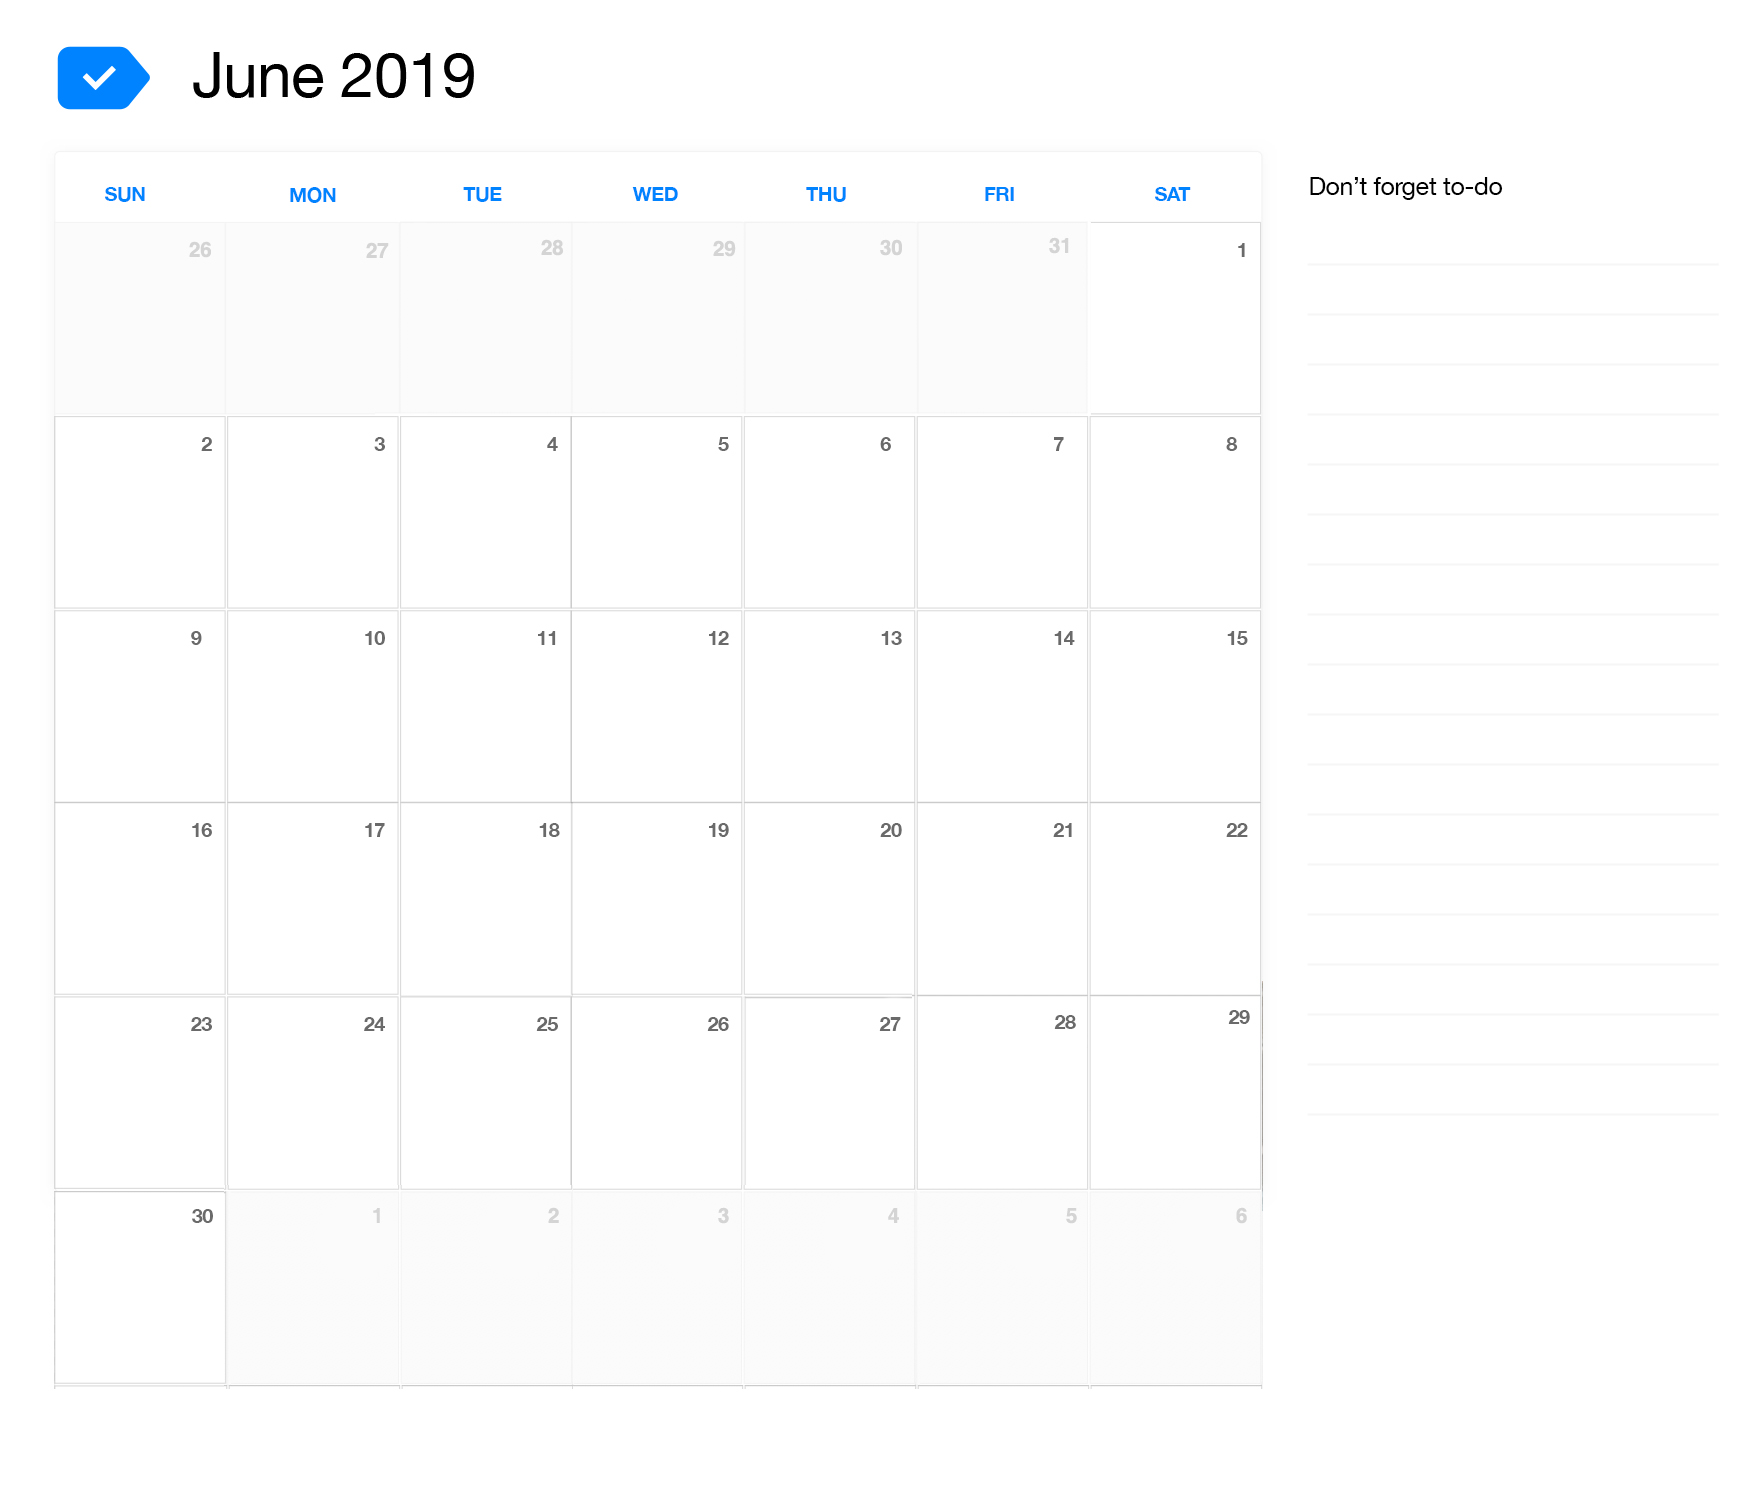 Blank June 2019 Printable Calendar.Blank June 2019 Calendar Template Download Free Printable Calendar